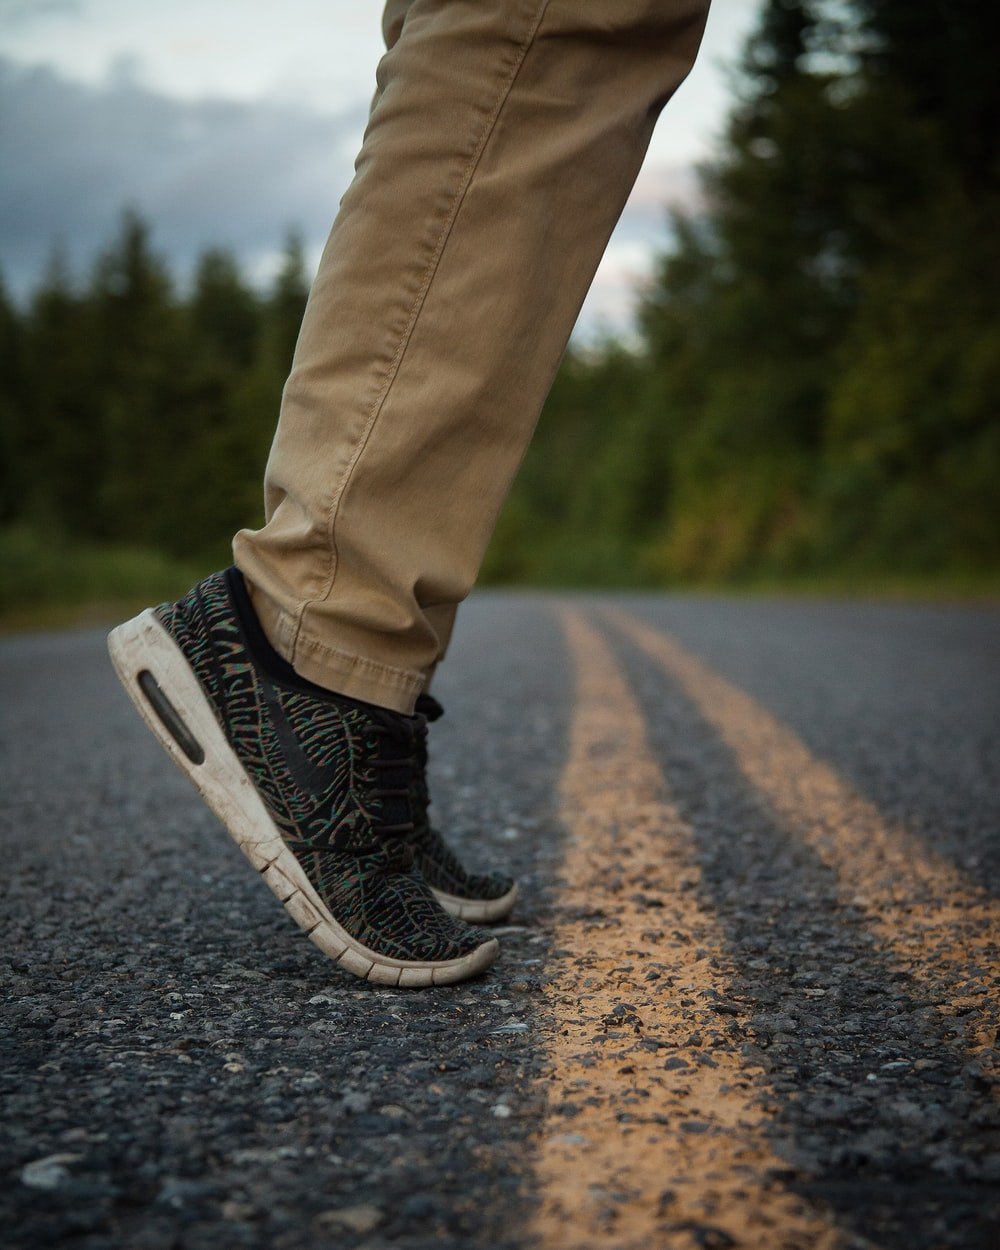 person wearing brown pants standing on road